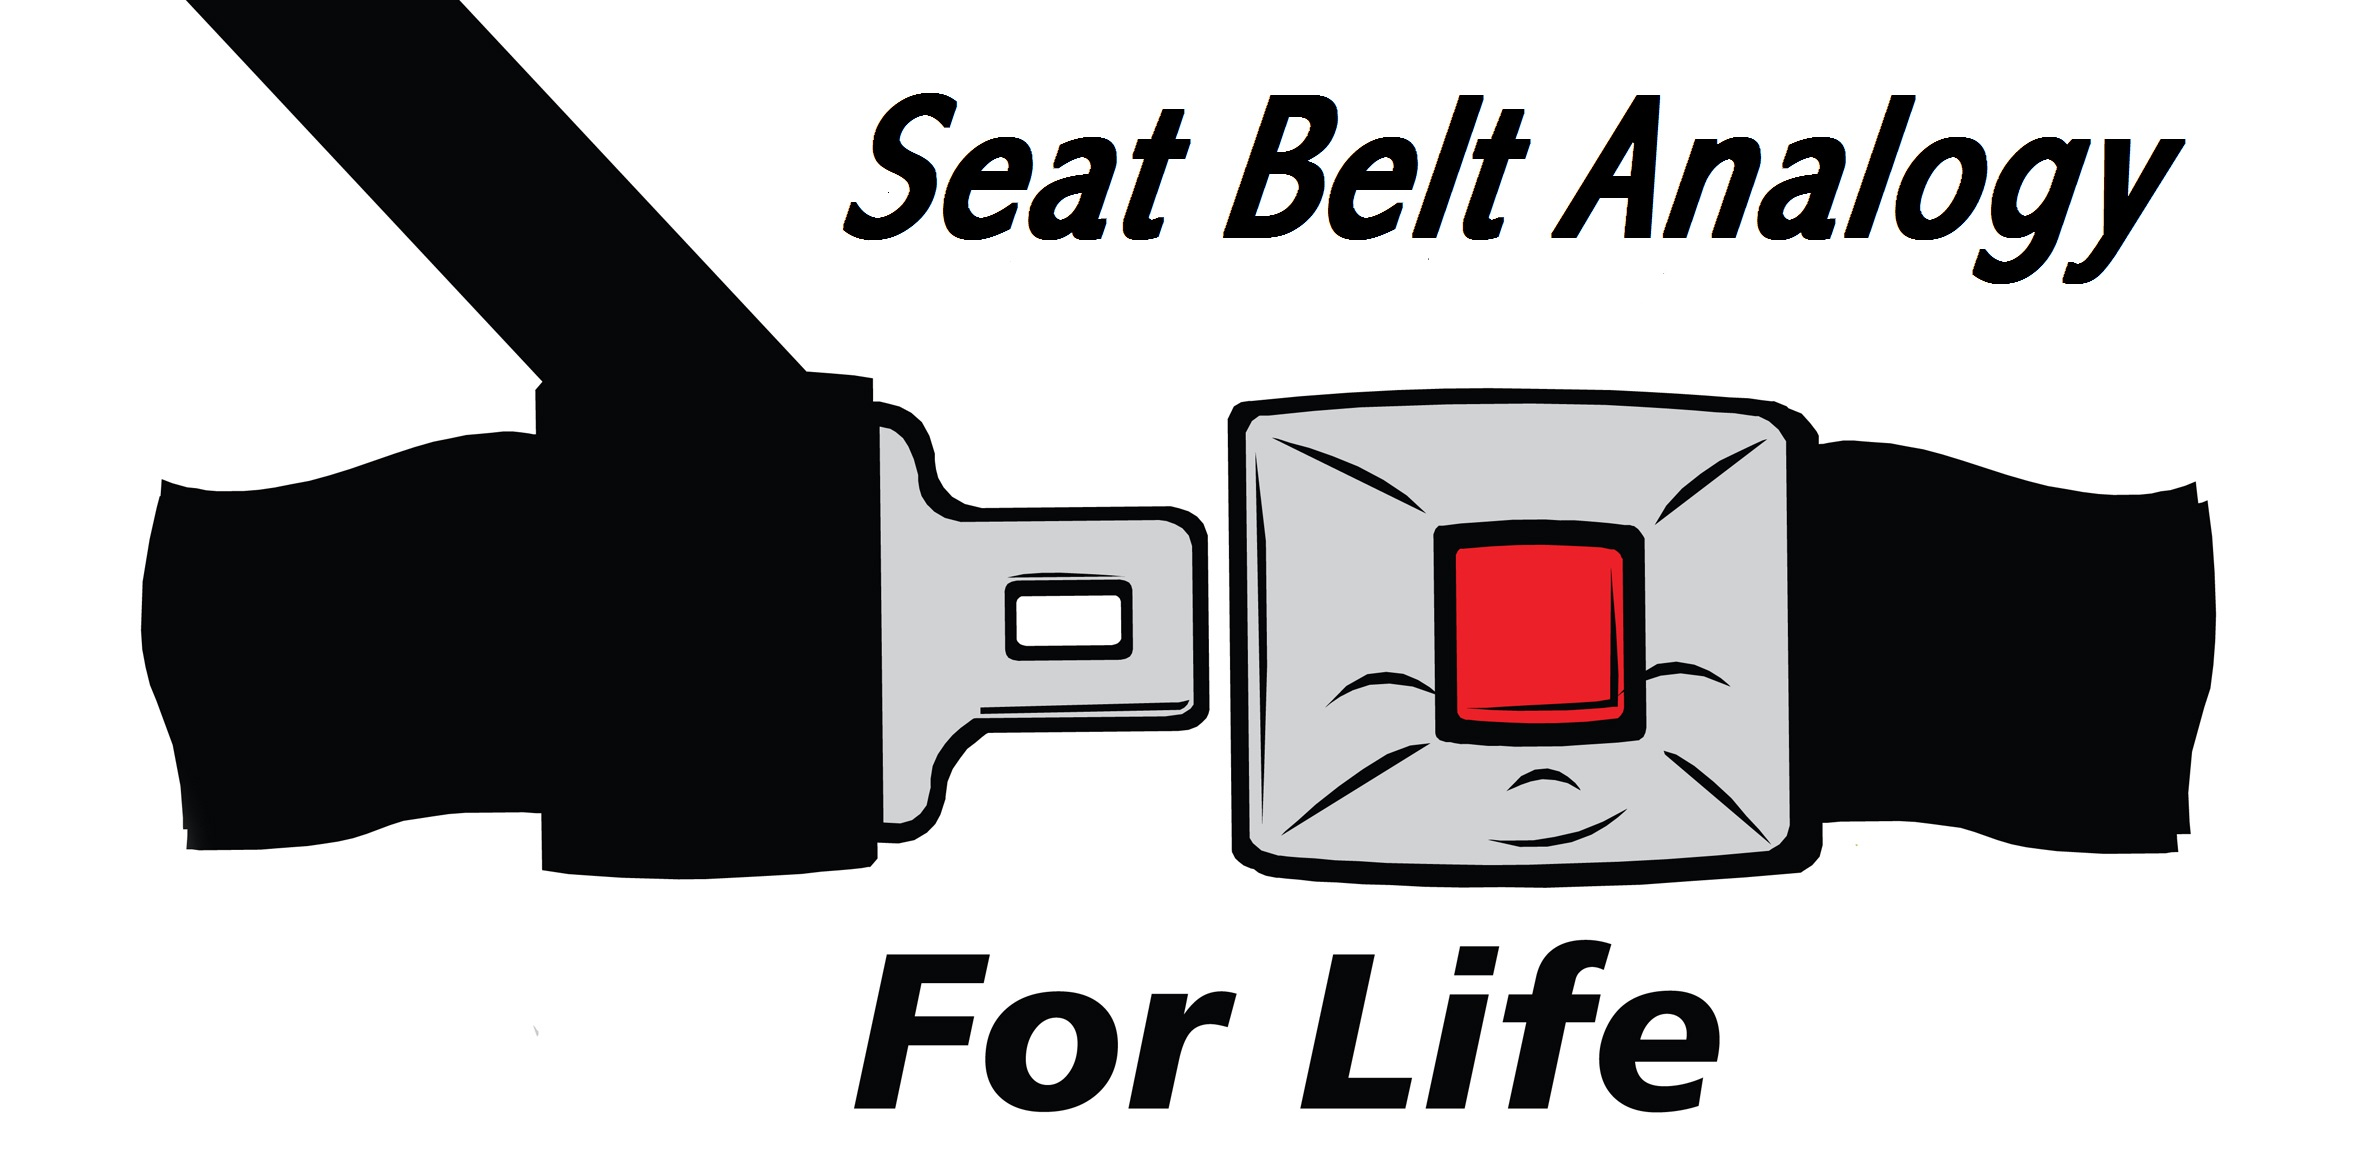 essay on why you should wear a seat belt Seat belts are not just belts so we would not get a ticket, the reason we wear seat belts is because when you get into a car accident it is always safe idea to wear a your seat belt so you will stay in place and would not get completely injured.